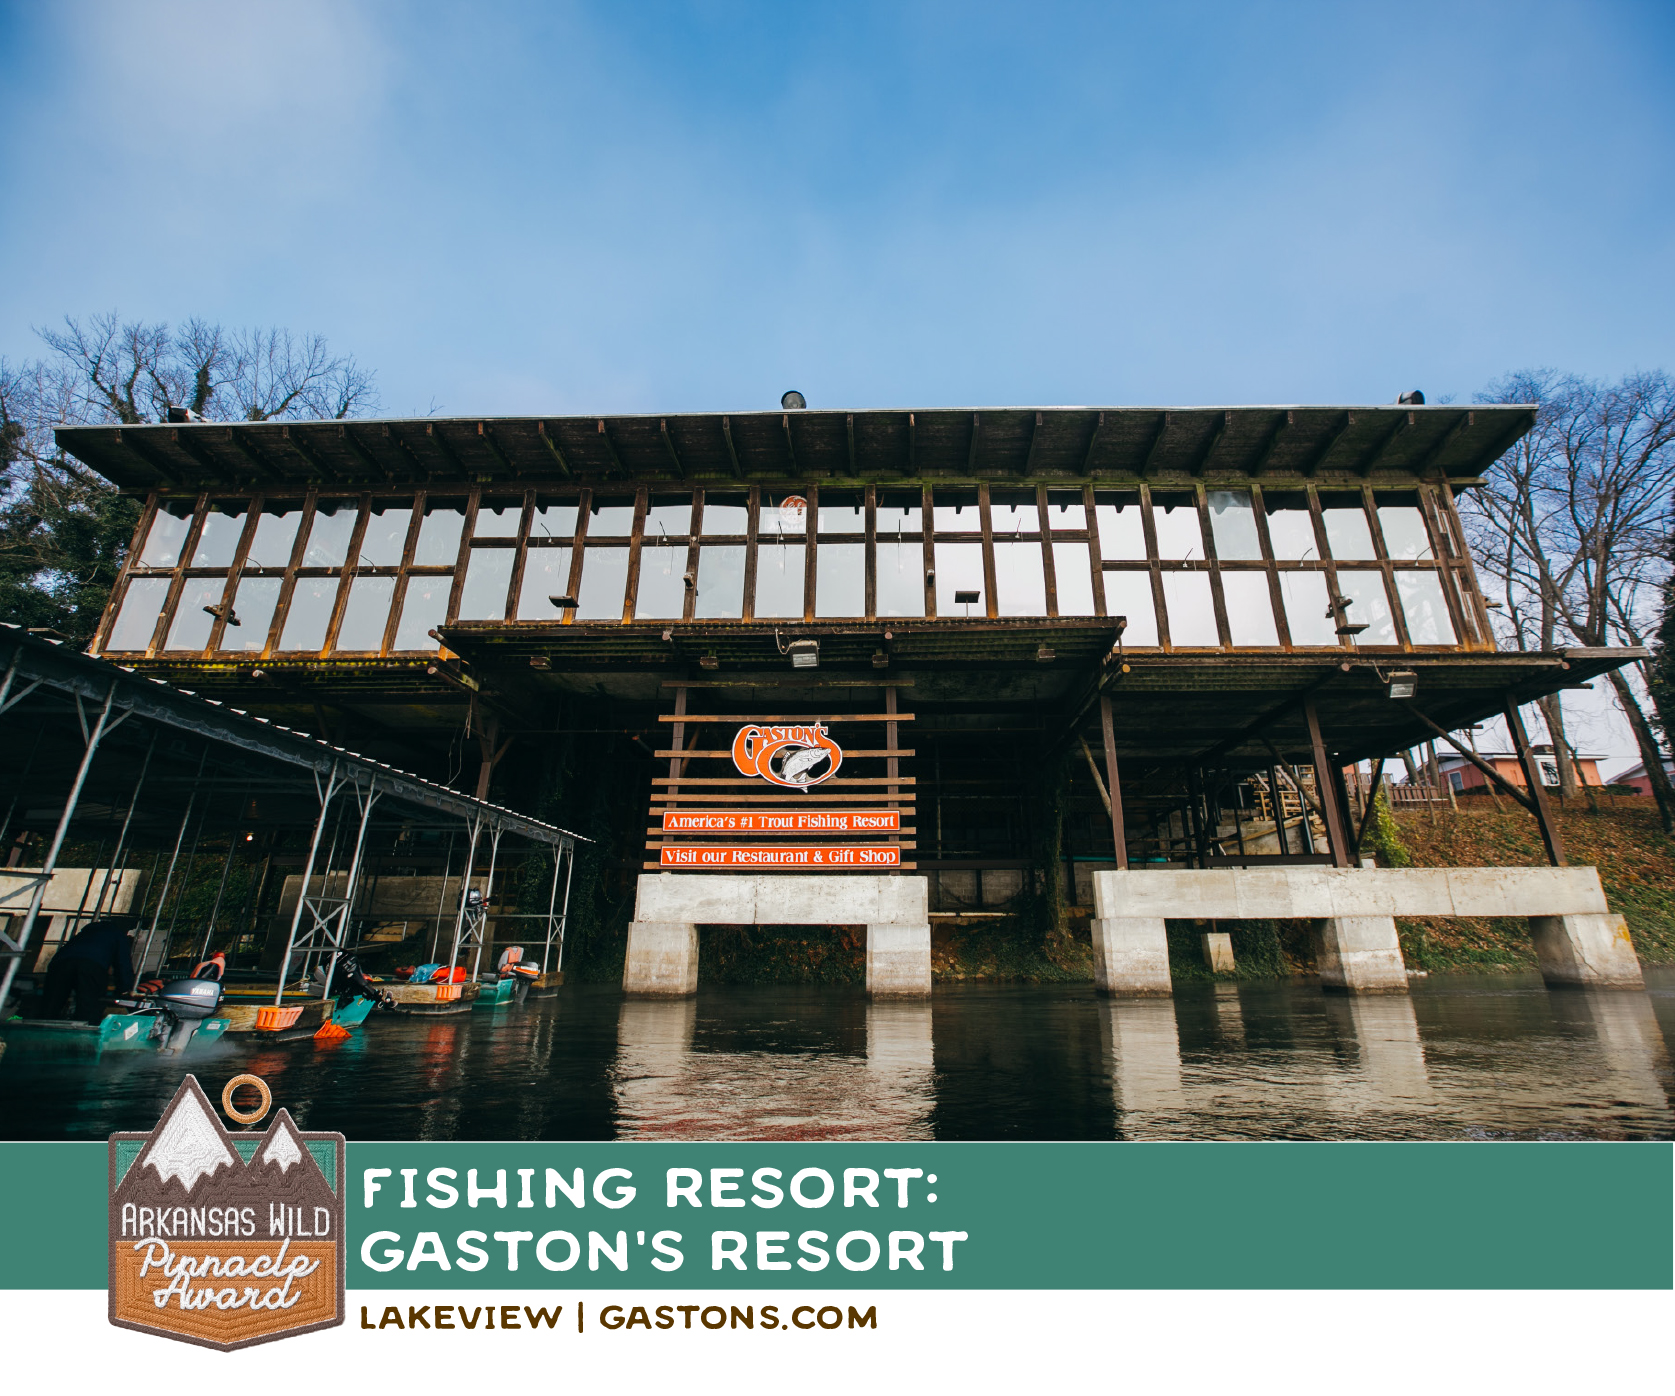 Don't miss Gaston's restaurant! they'll cook your catch right up!